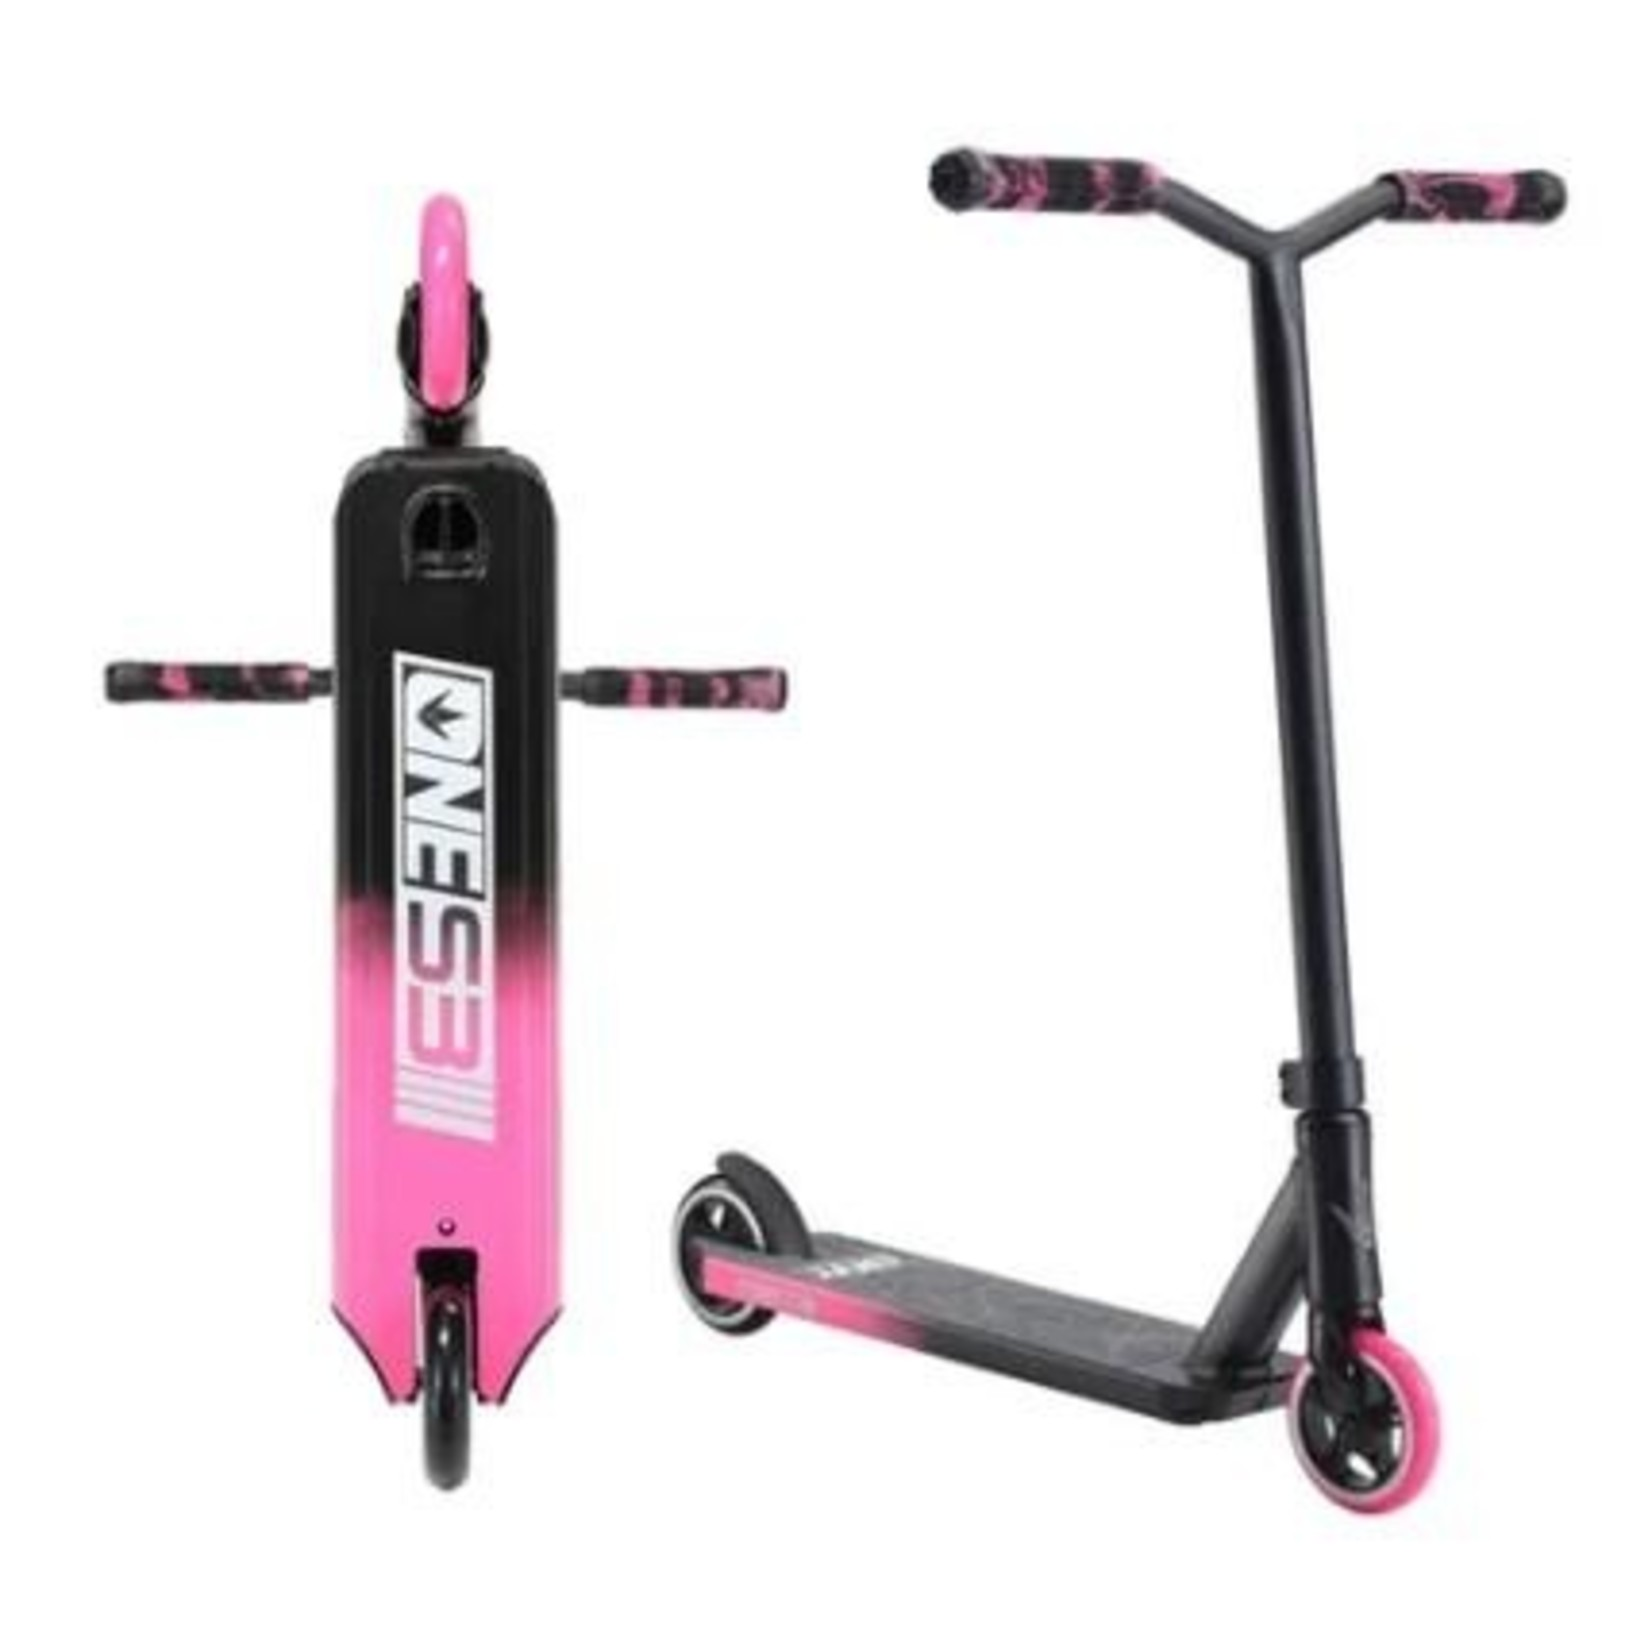 Envy Envy Scooter One Series 3 Complete pink/black